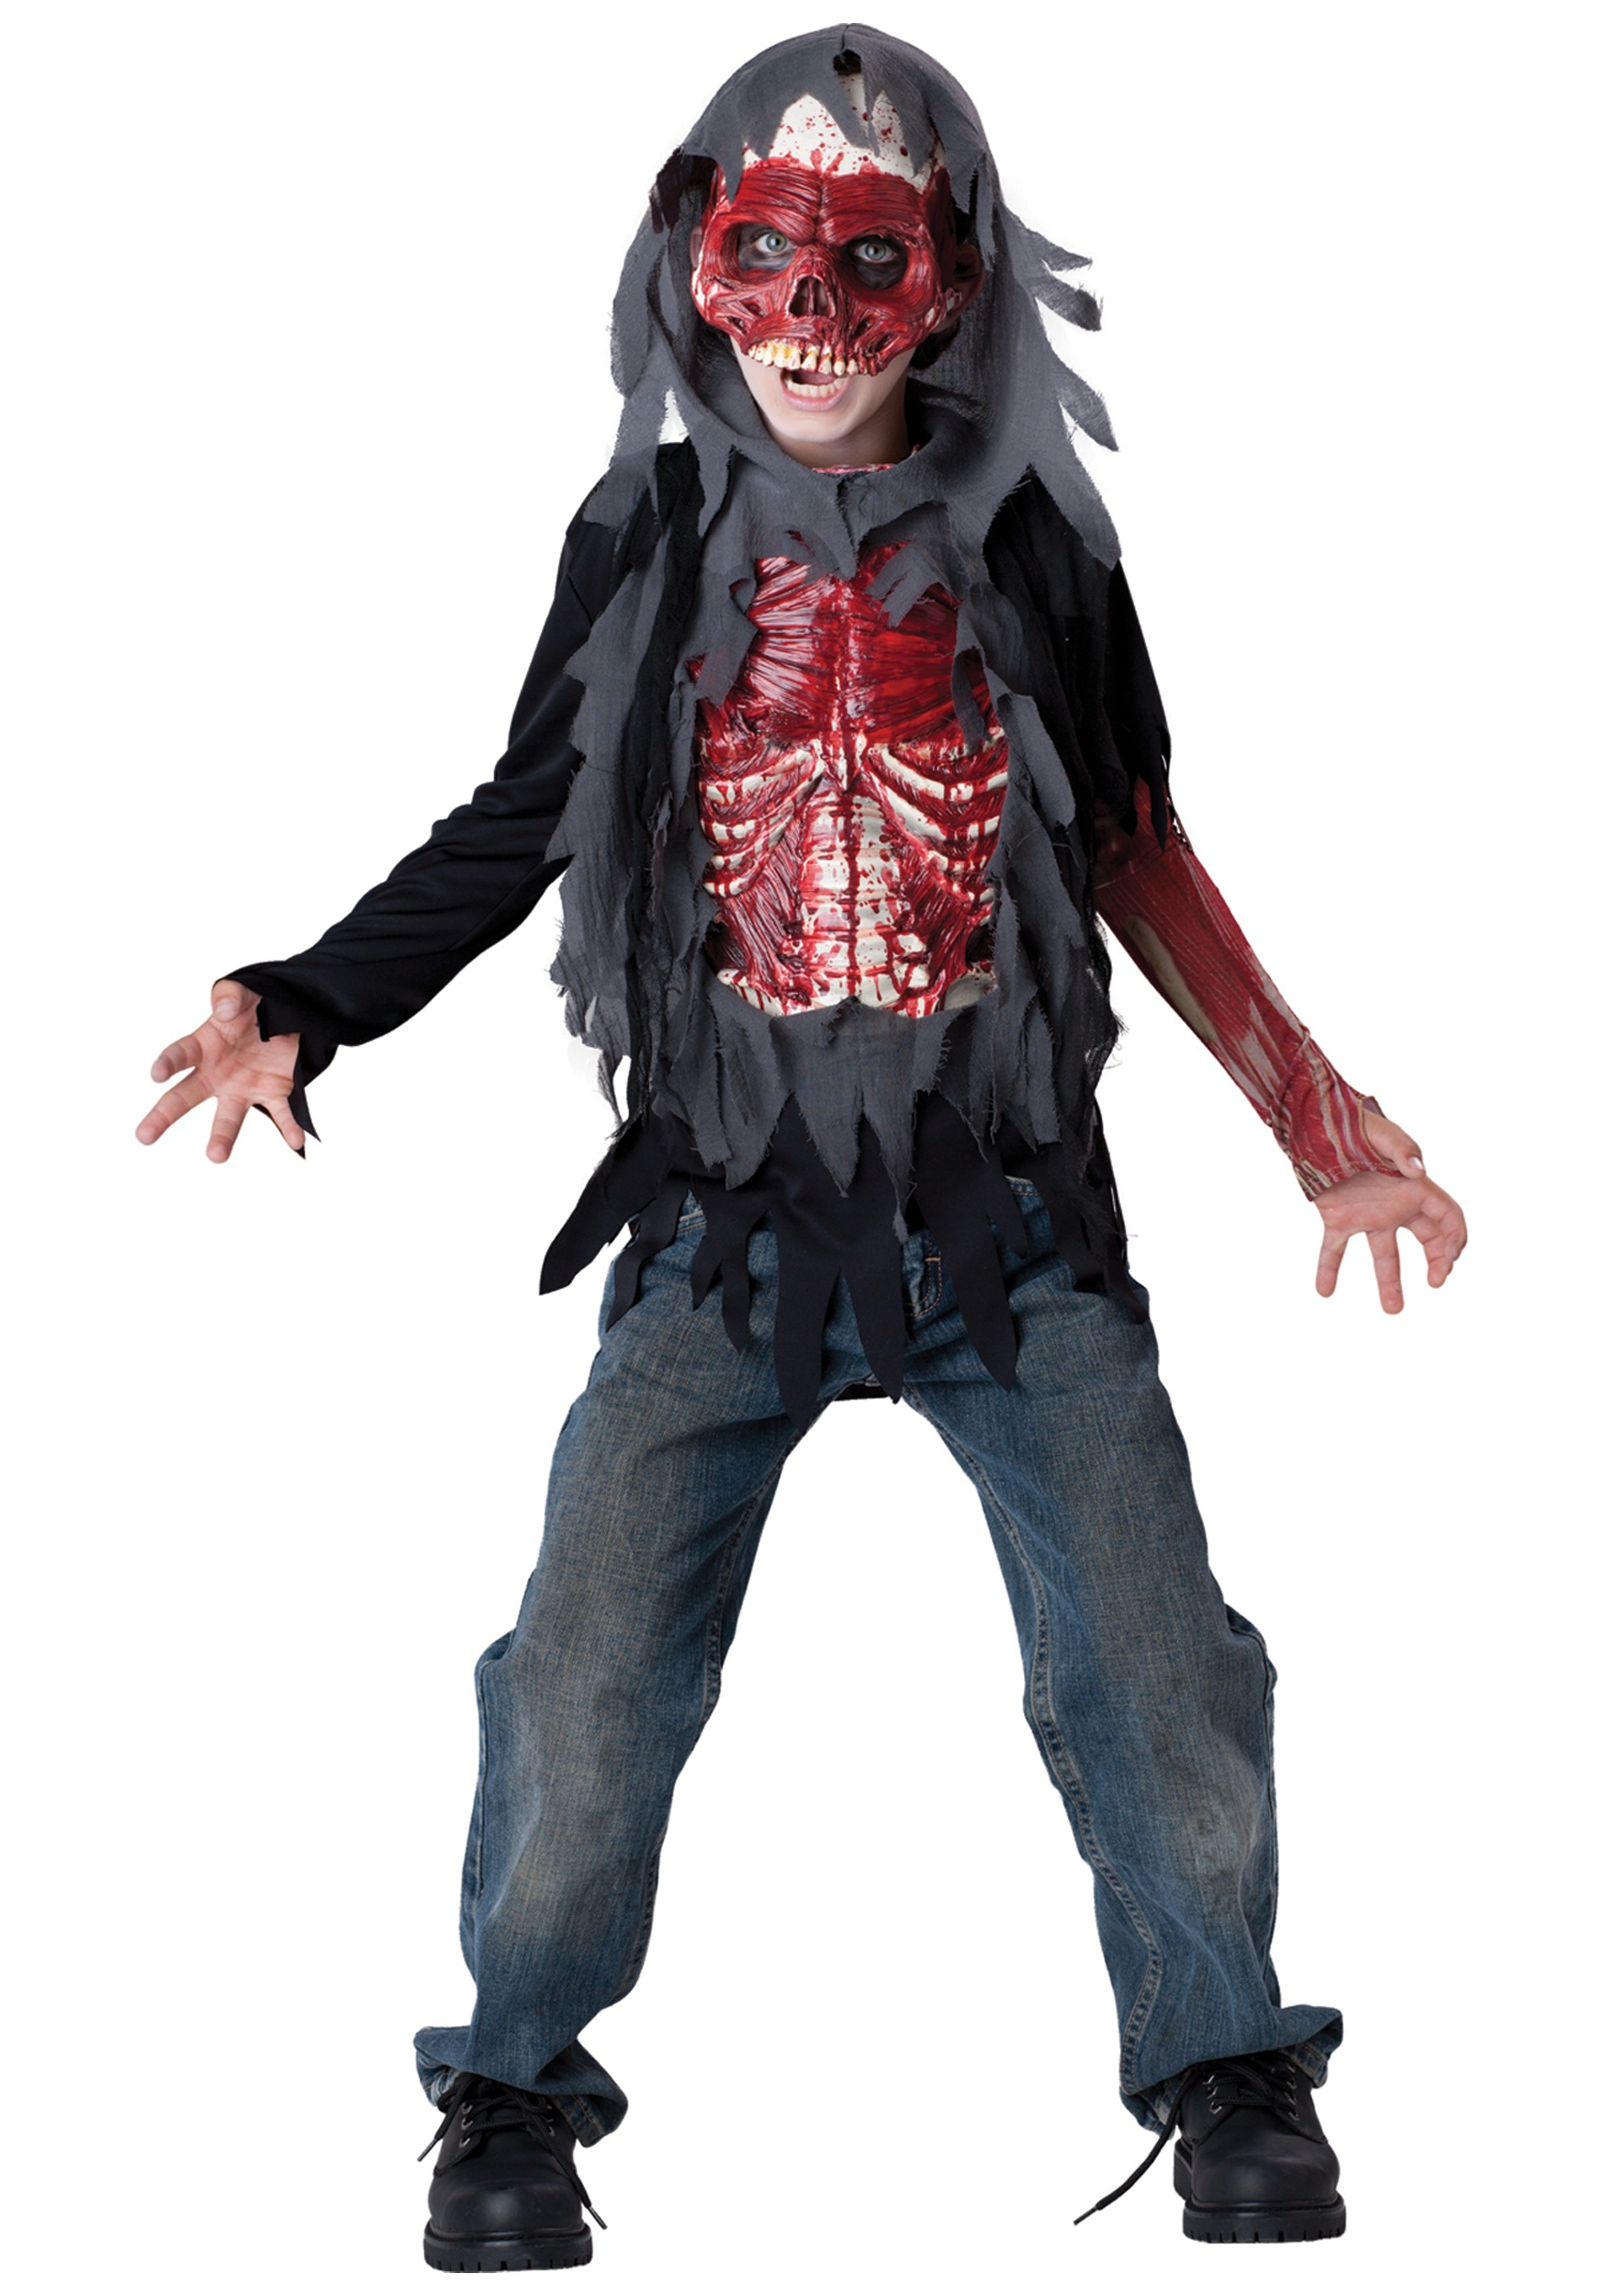 Kids Skinned Alive Zombie Costume Halloween Costumes